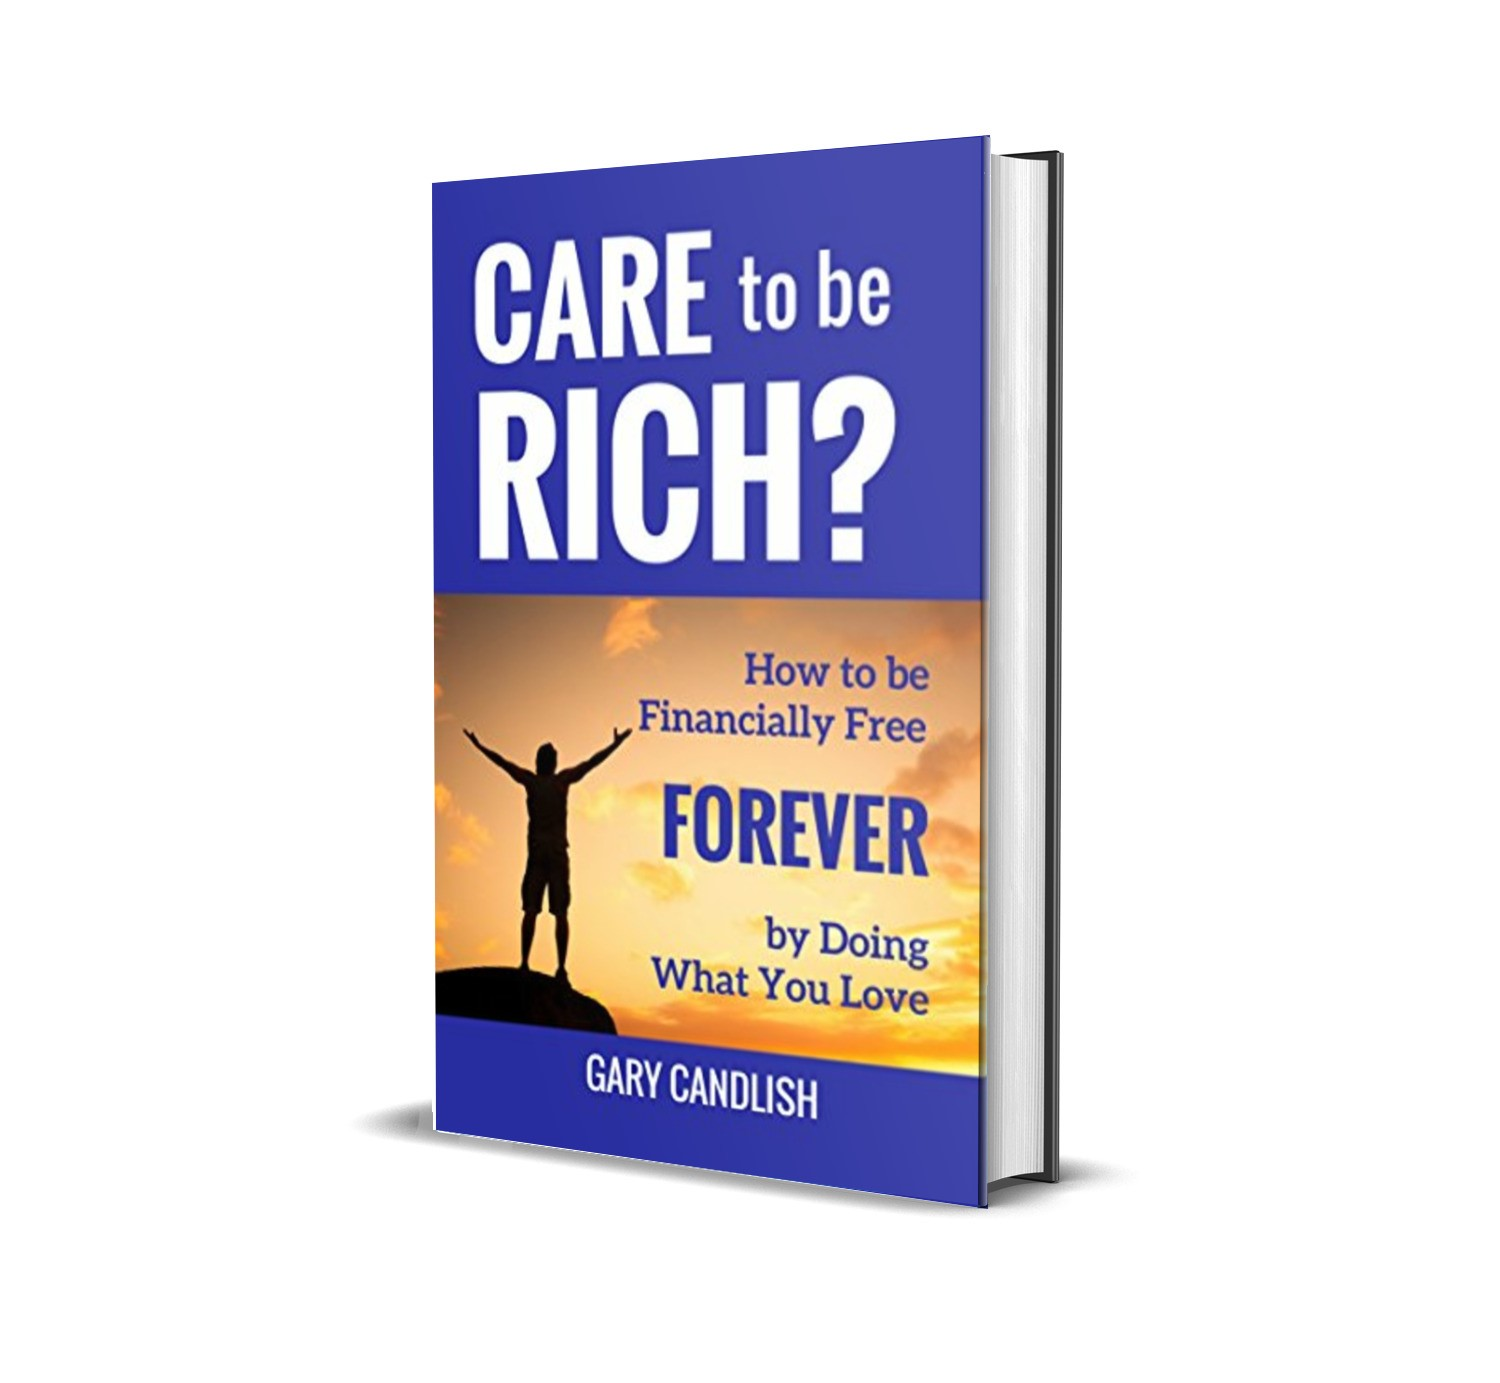 care-to-be-rich-michelle-emerson